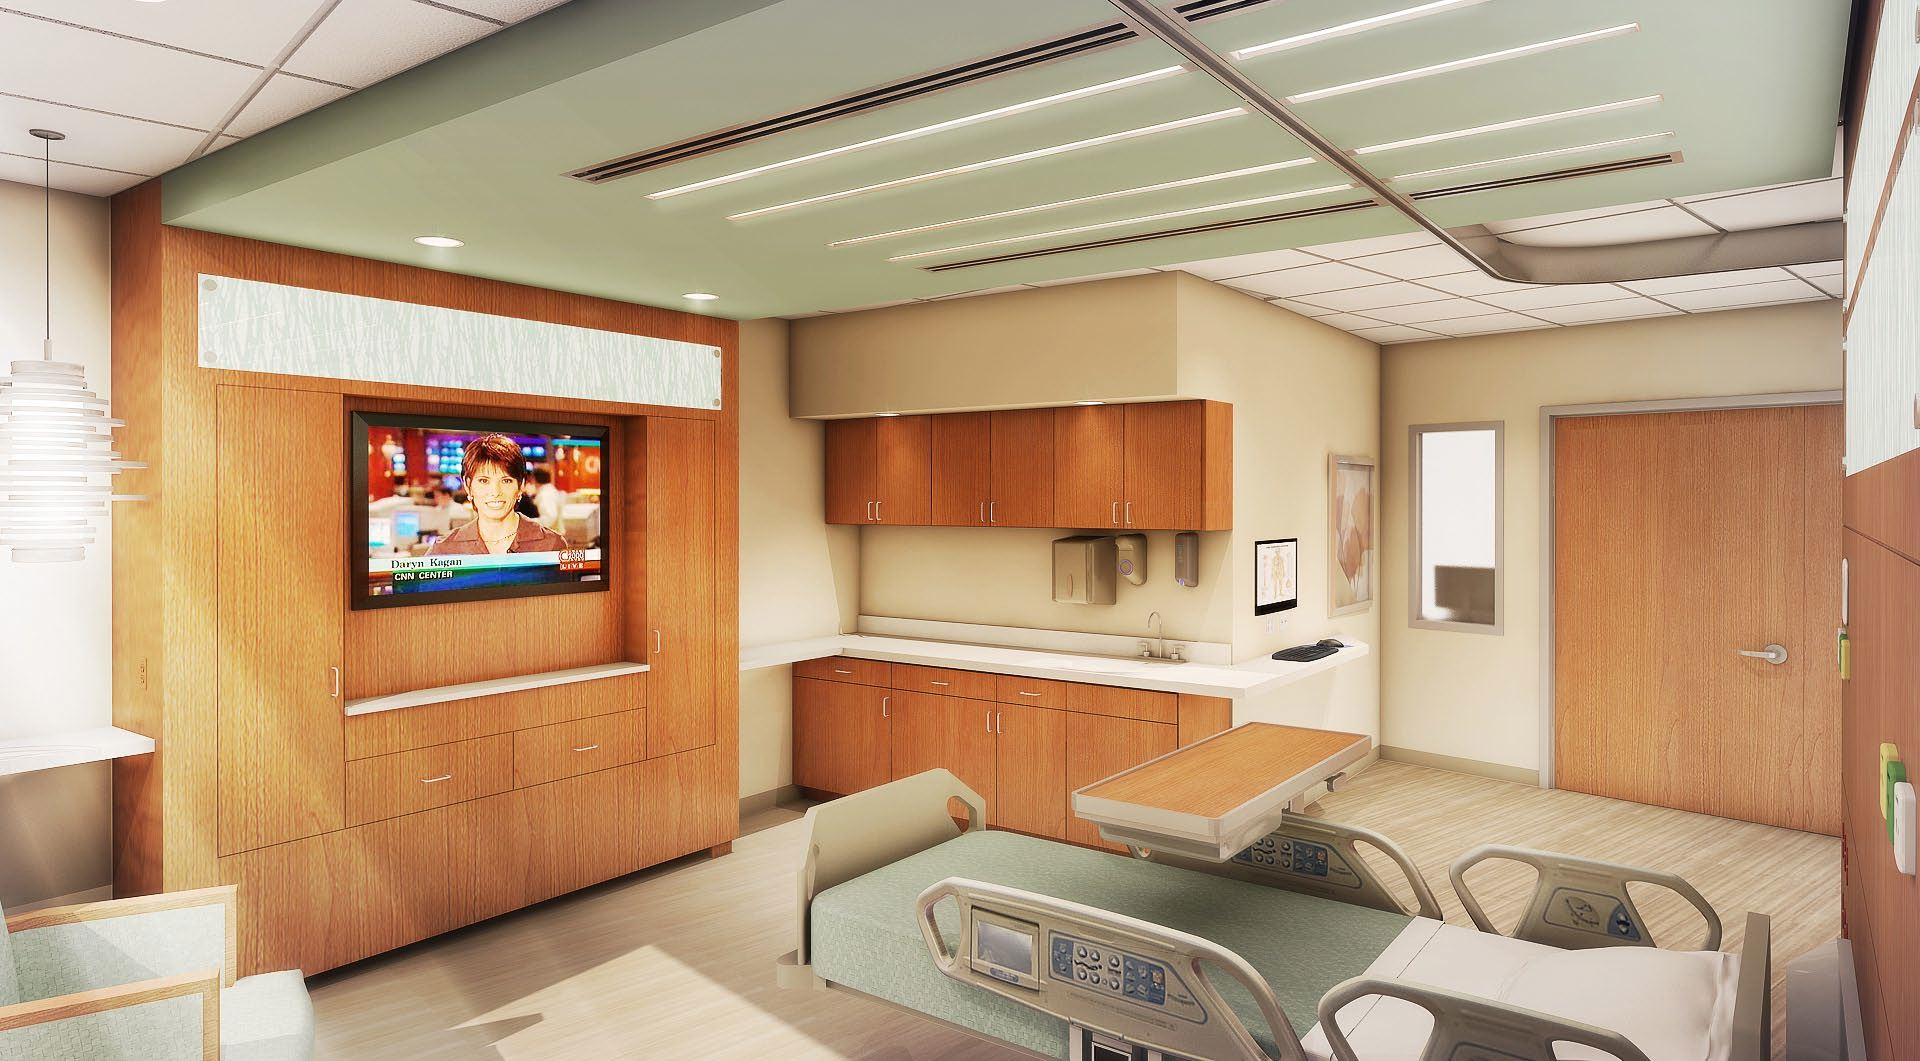 Volume 4: High Performance Nursing Units and Patient Room Innovation